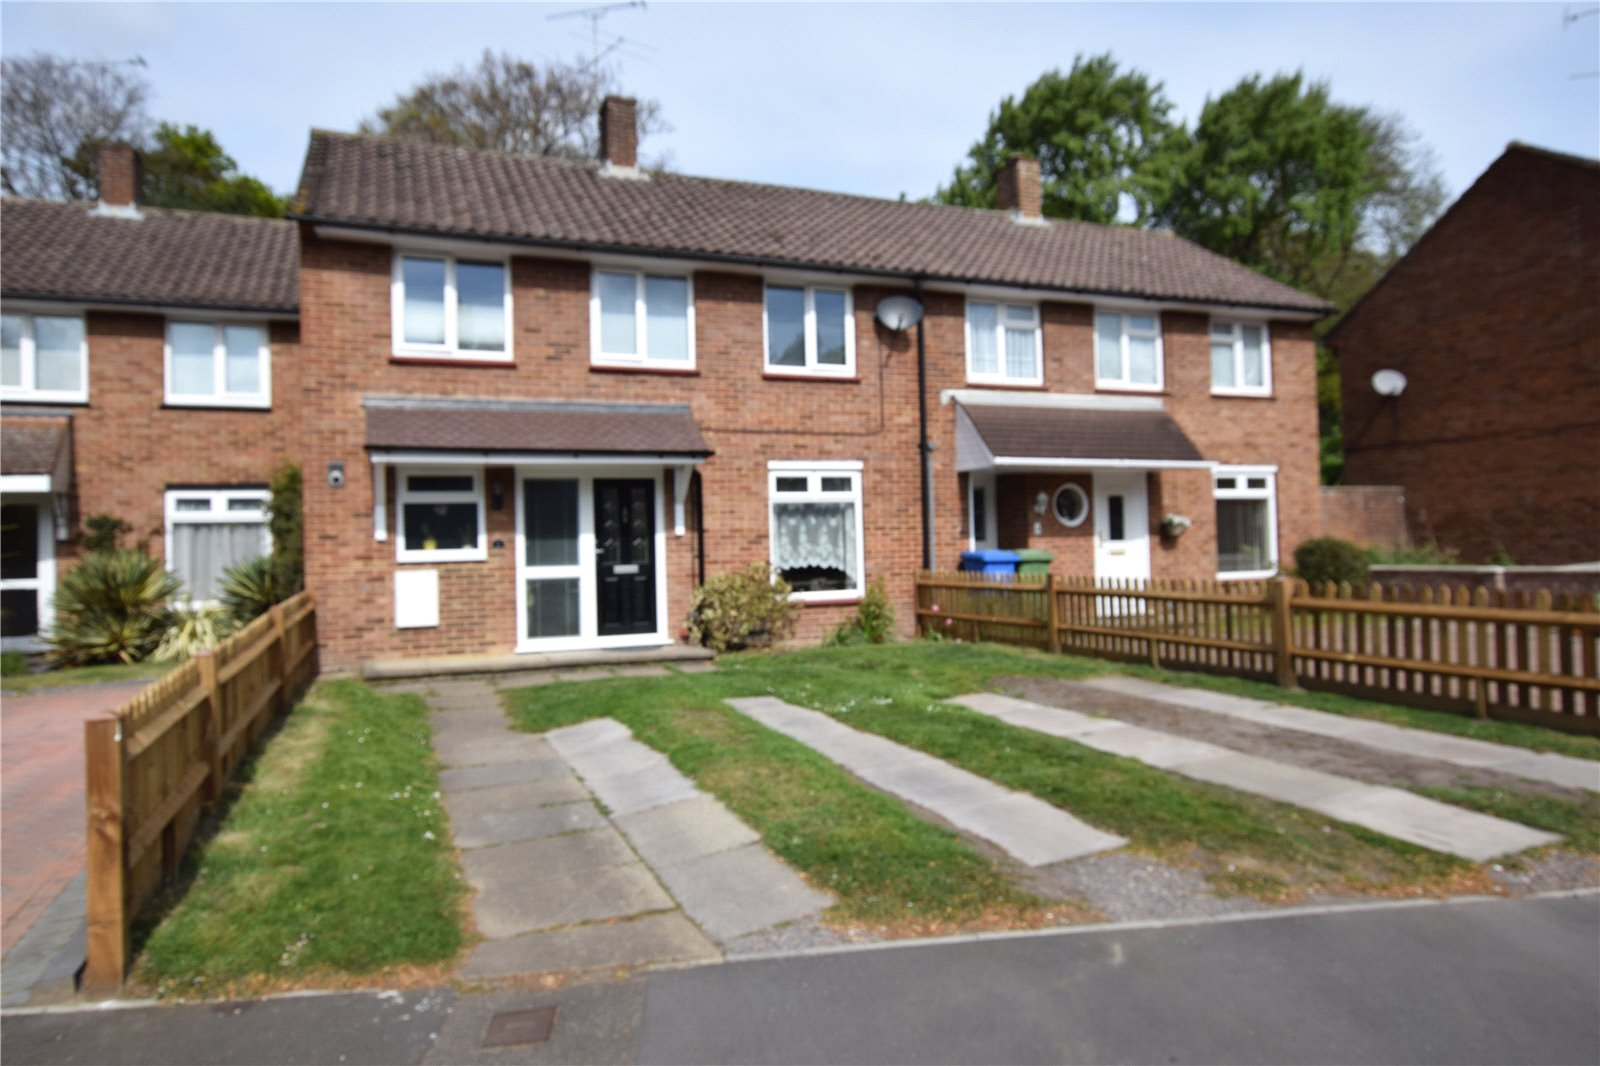 3 Bedrooms Terraced House for sale in Drovers Way, Bracknell, Berkshire, RG12